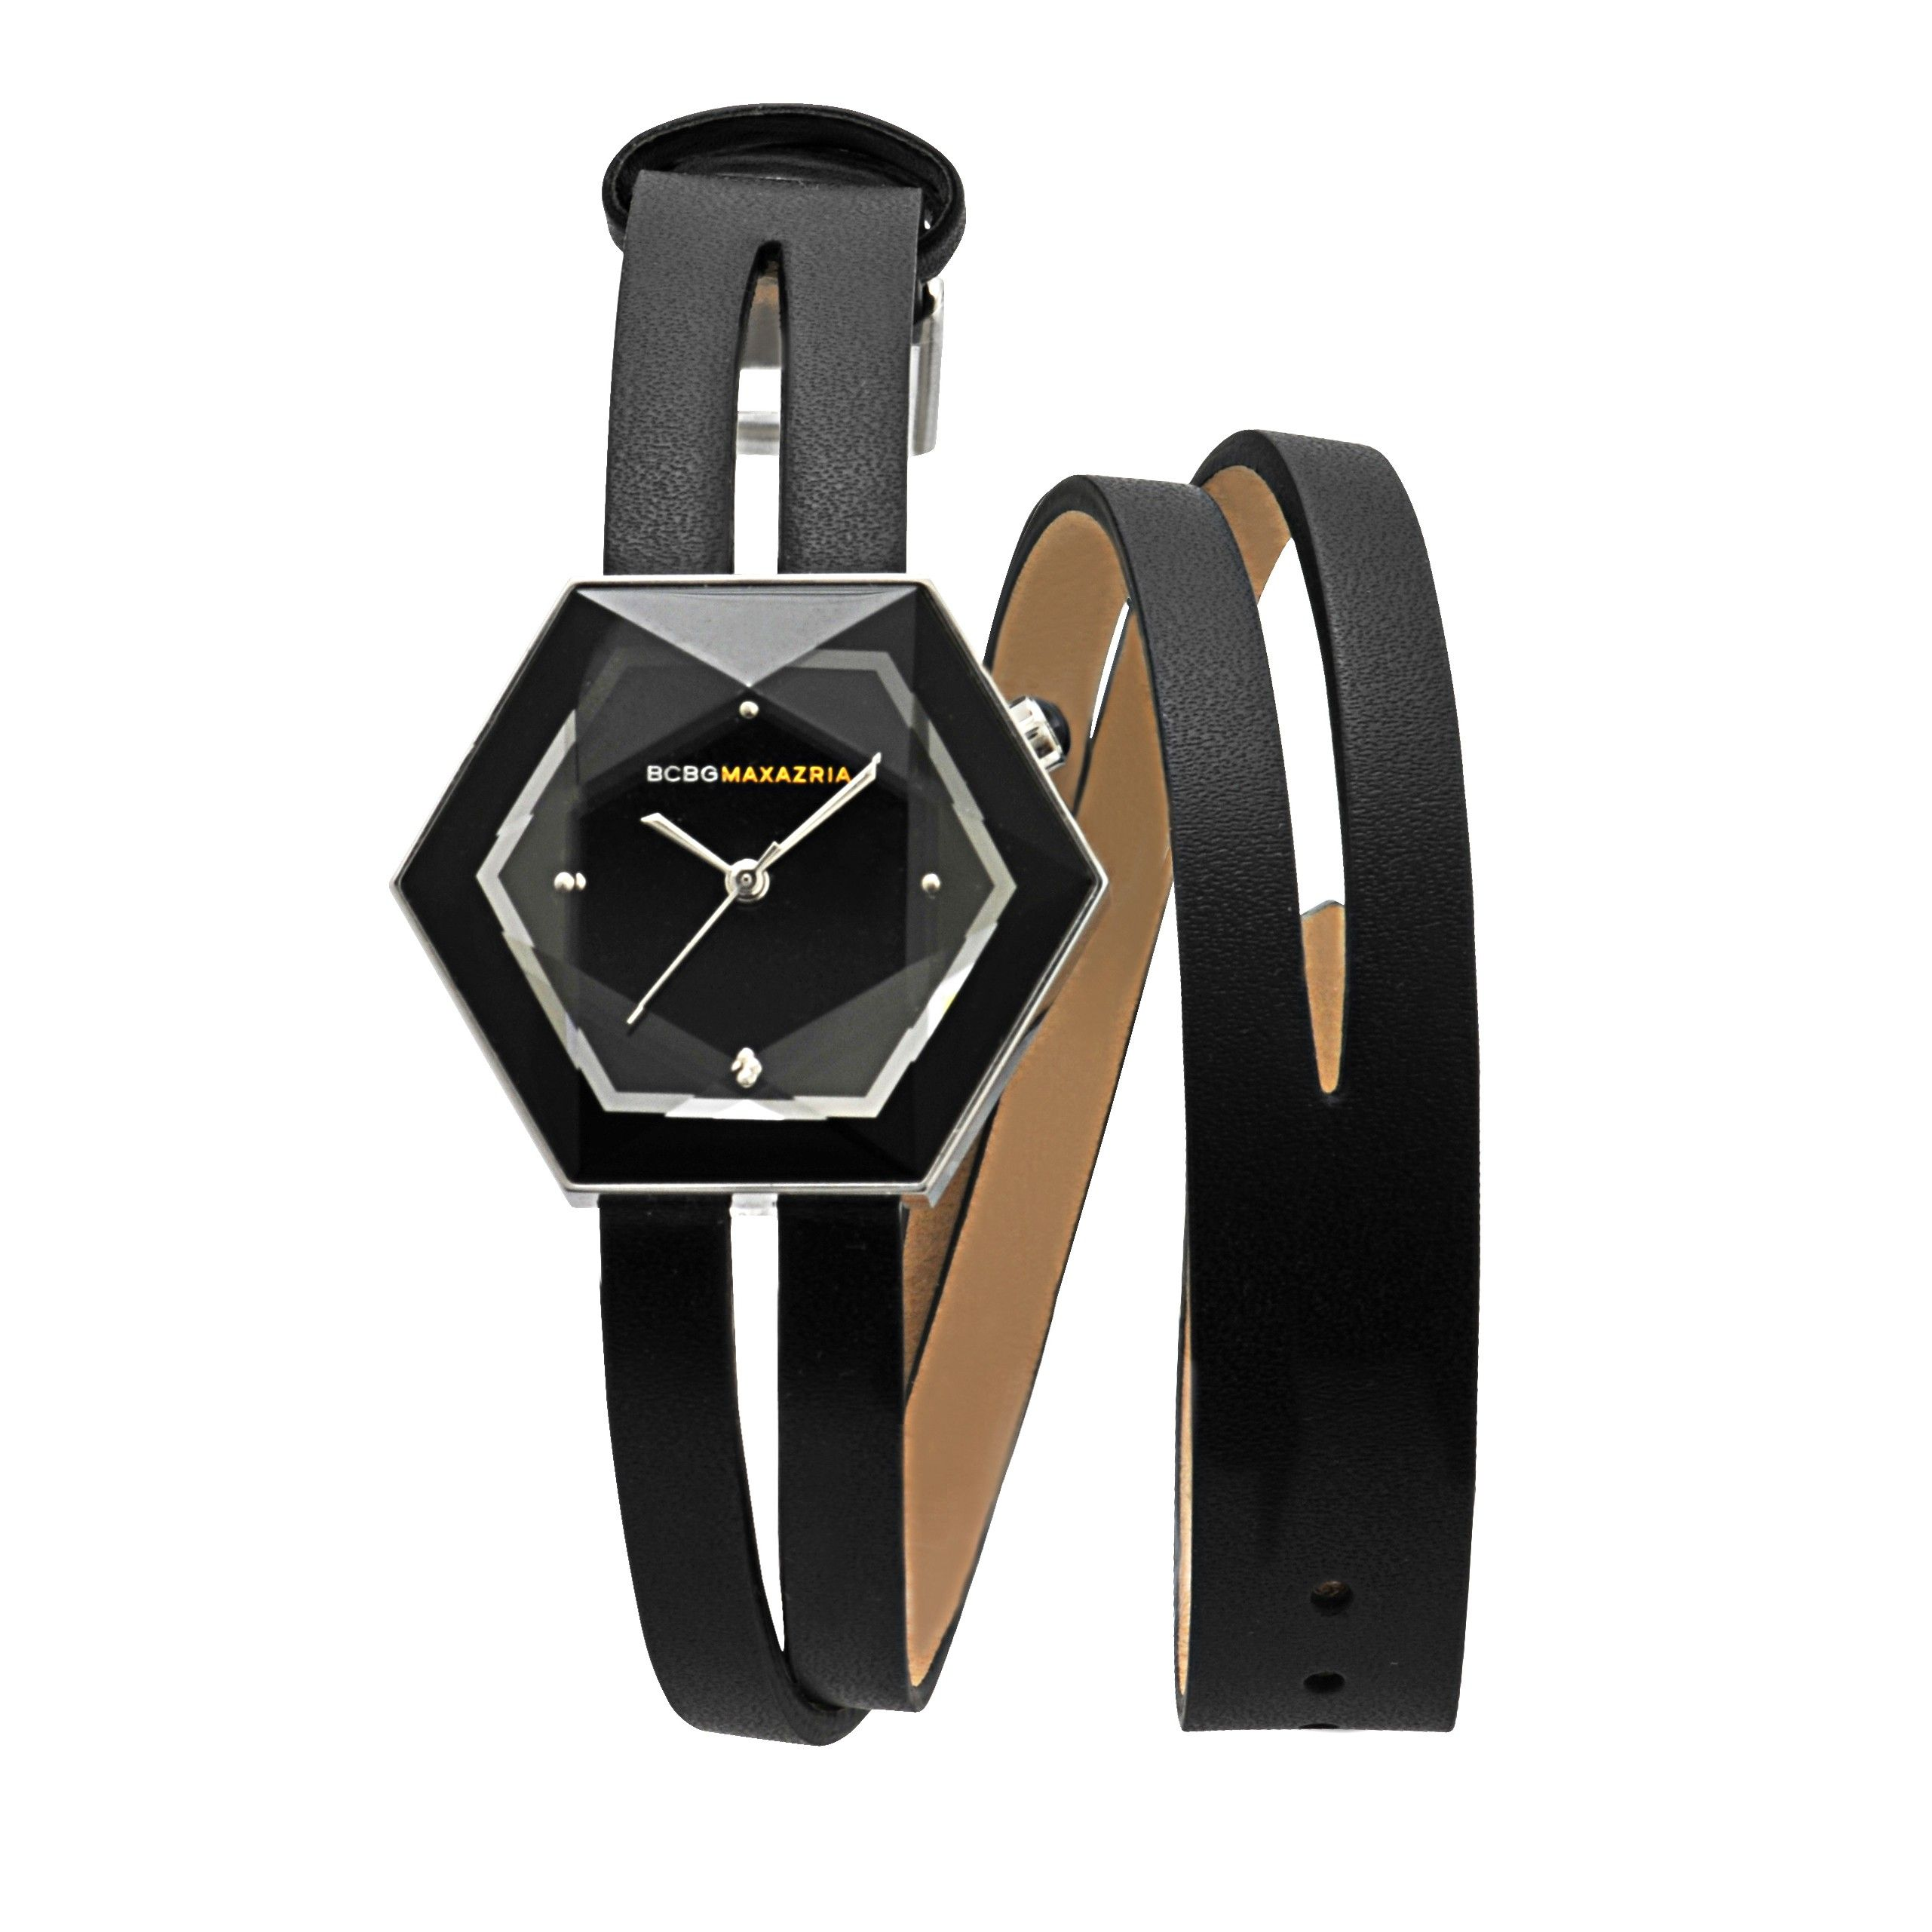 prism prices reviews in online sale brands for watches shop wristwatches